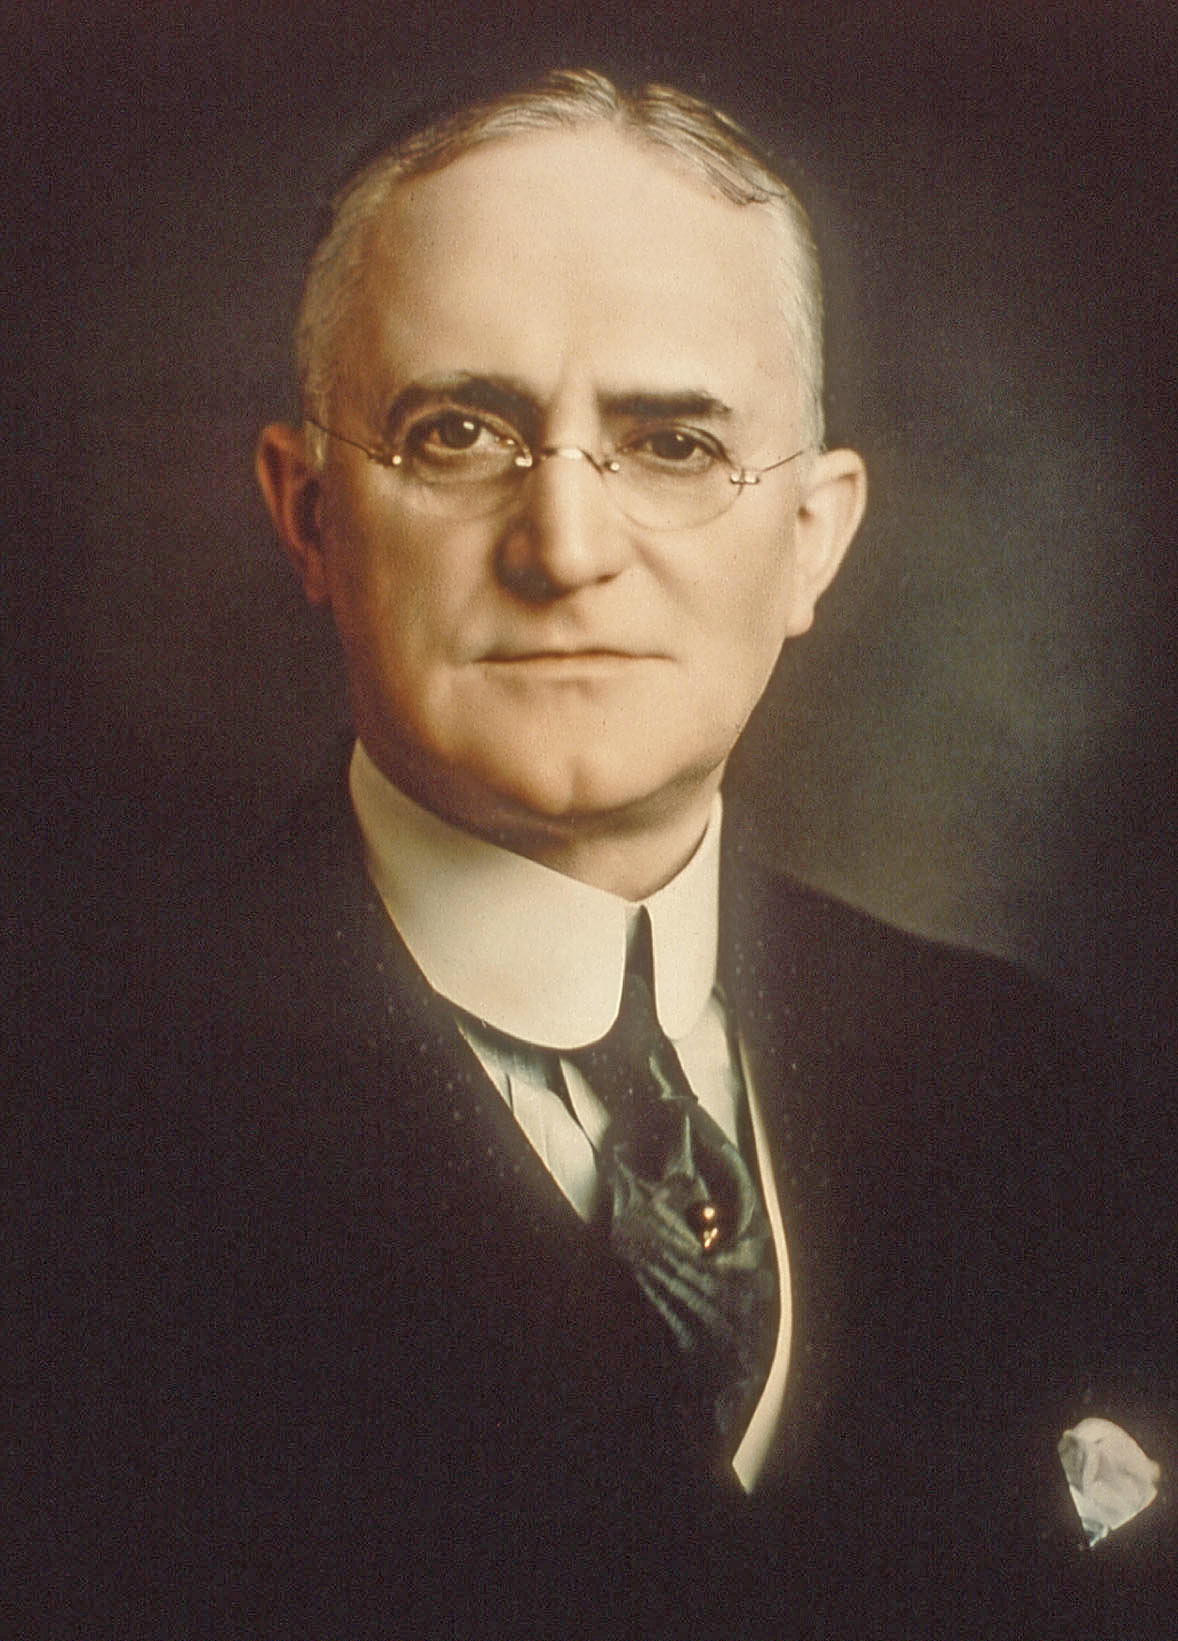 George Eastman Biography